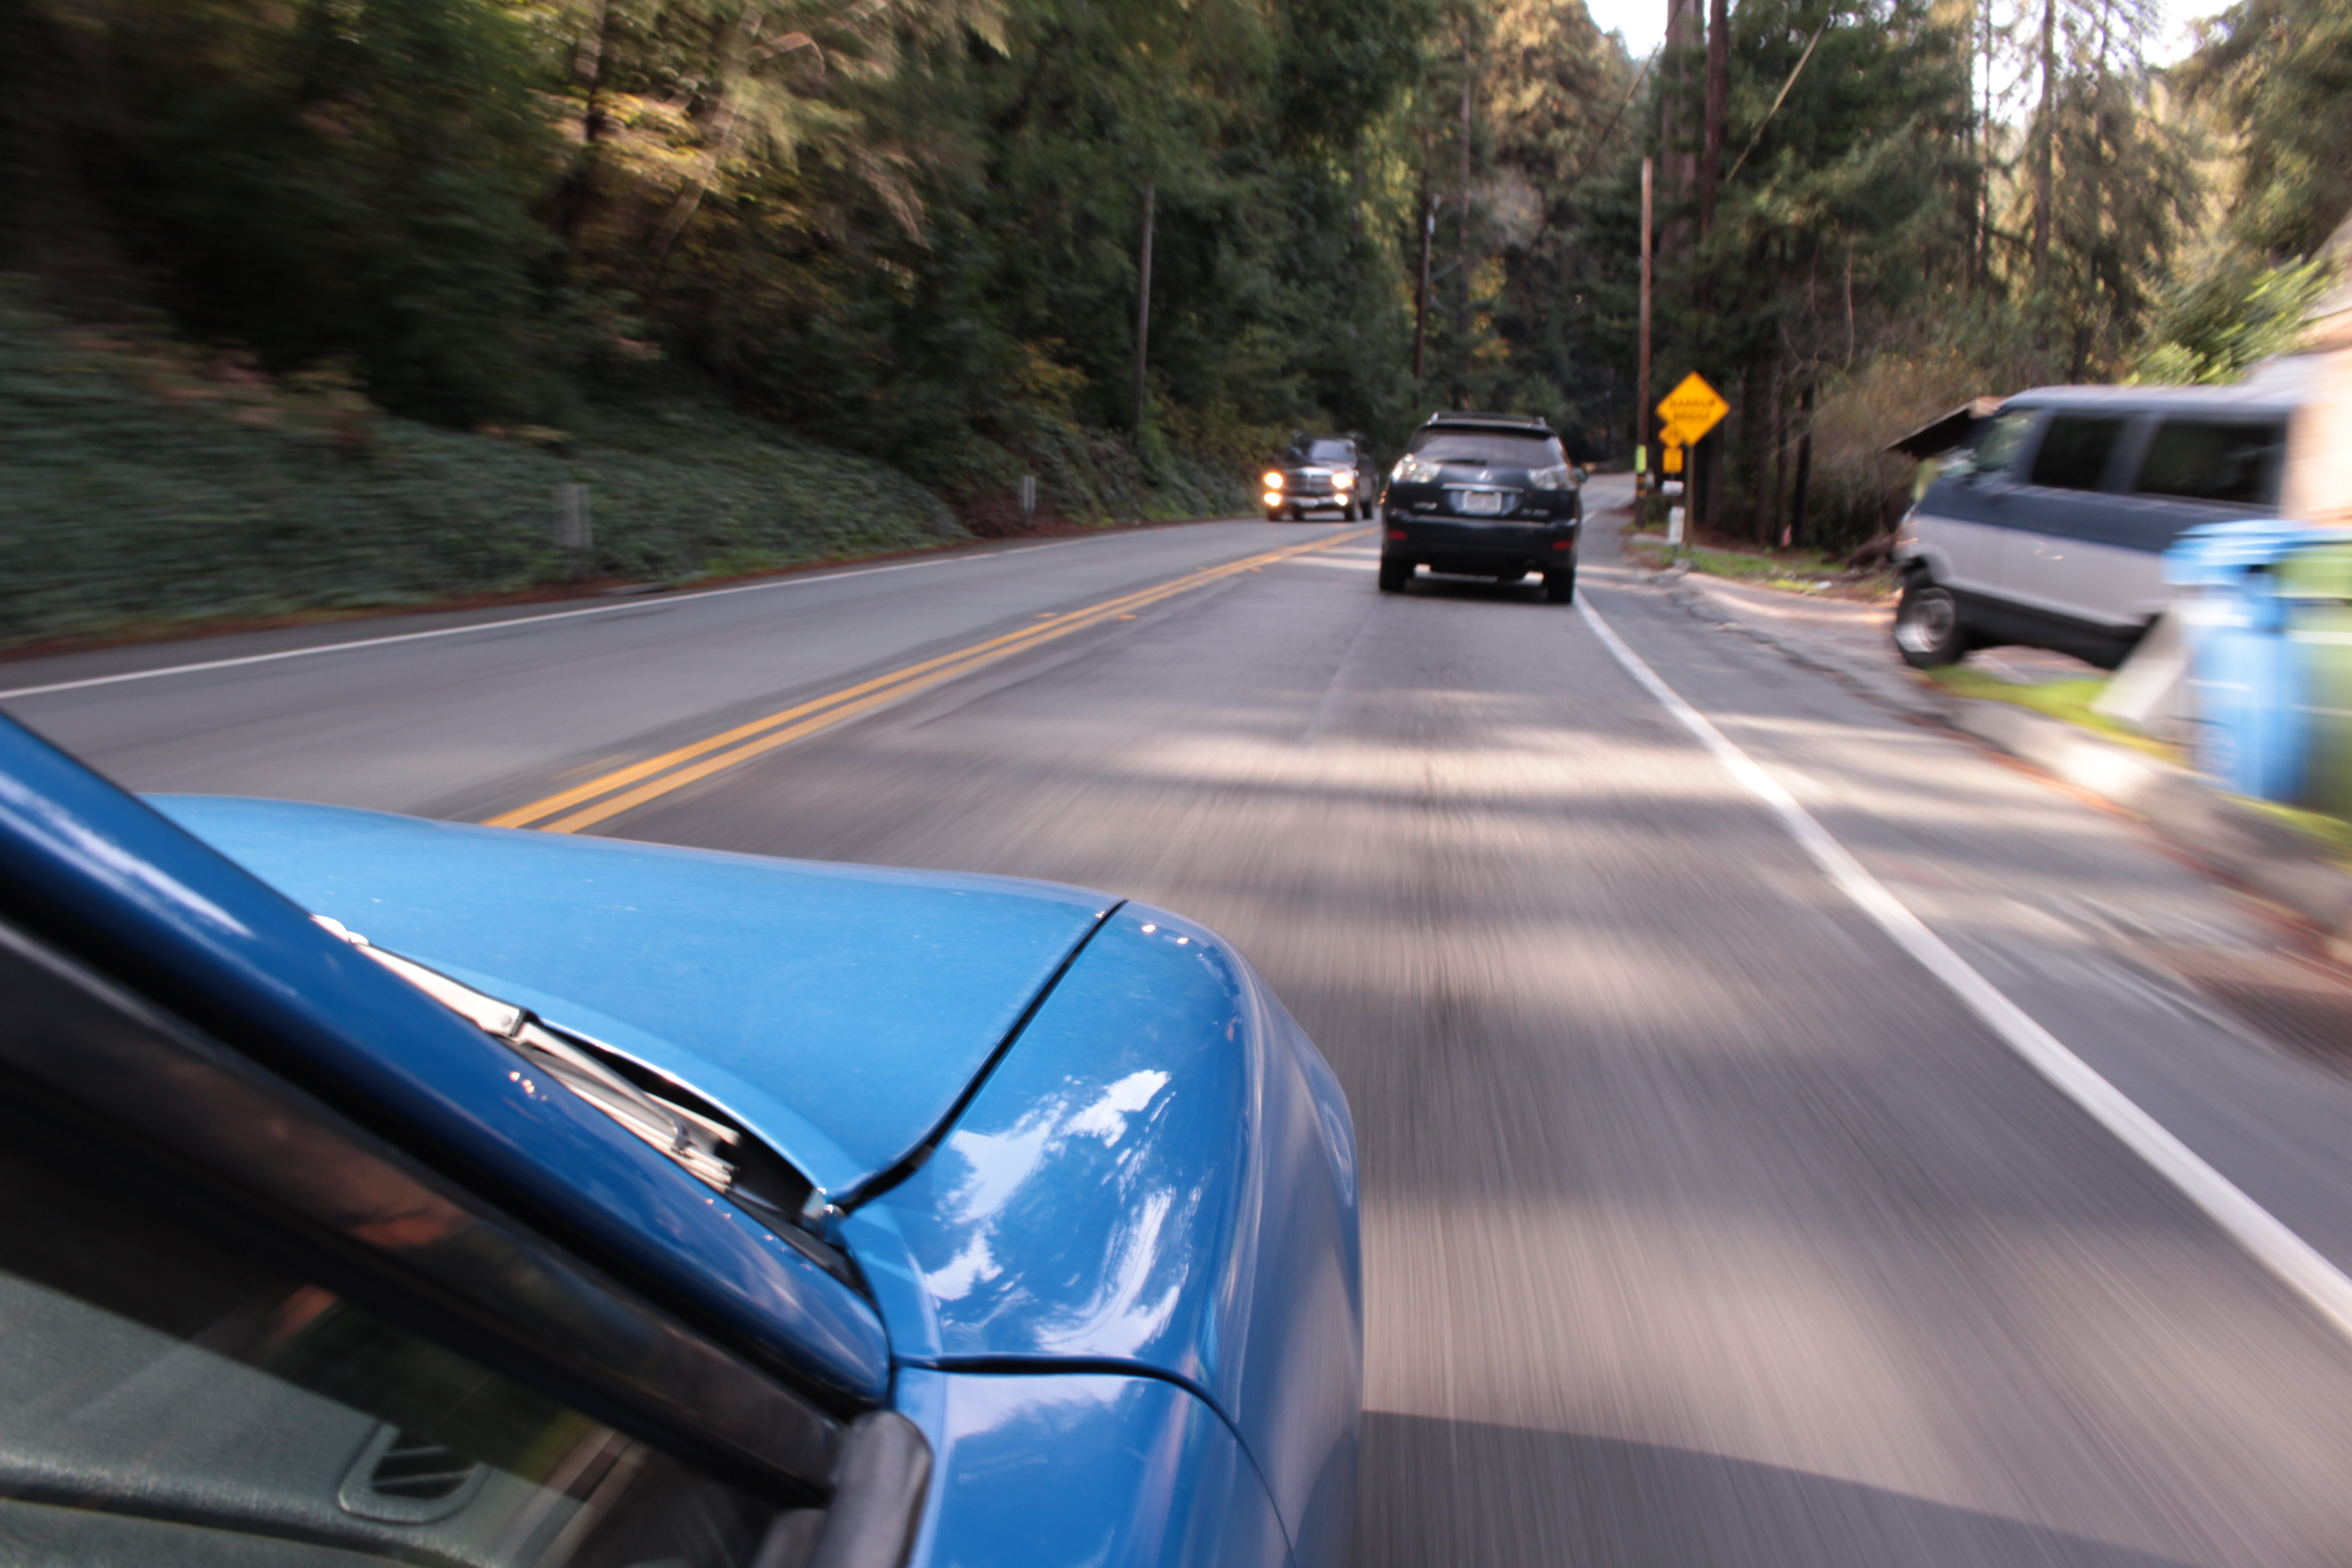 Michael and his Miata zoom through the Felton forests on Route 9